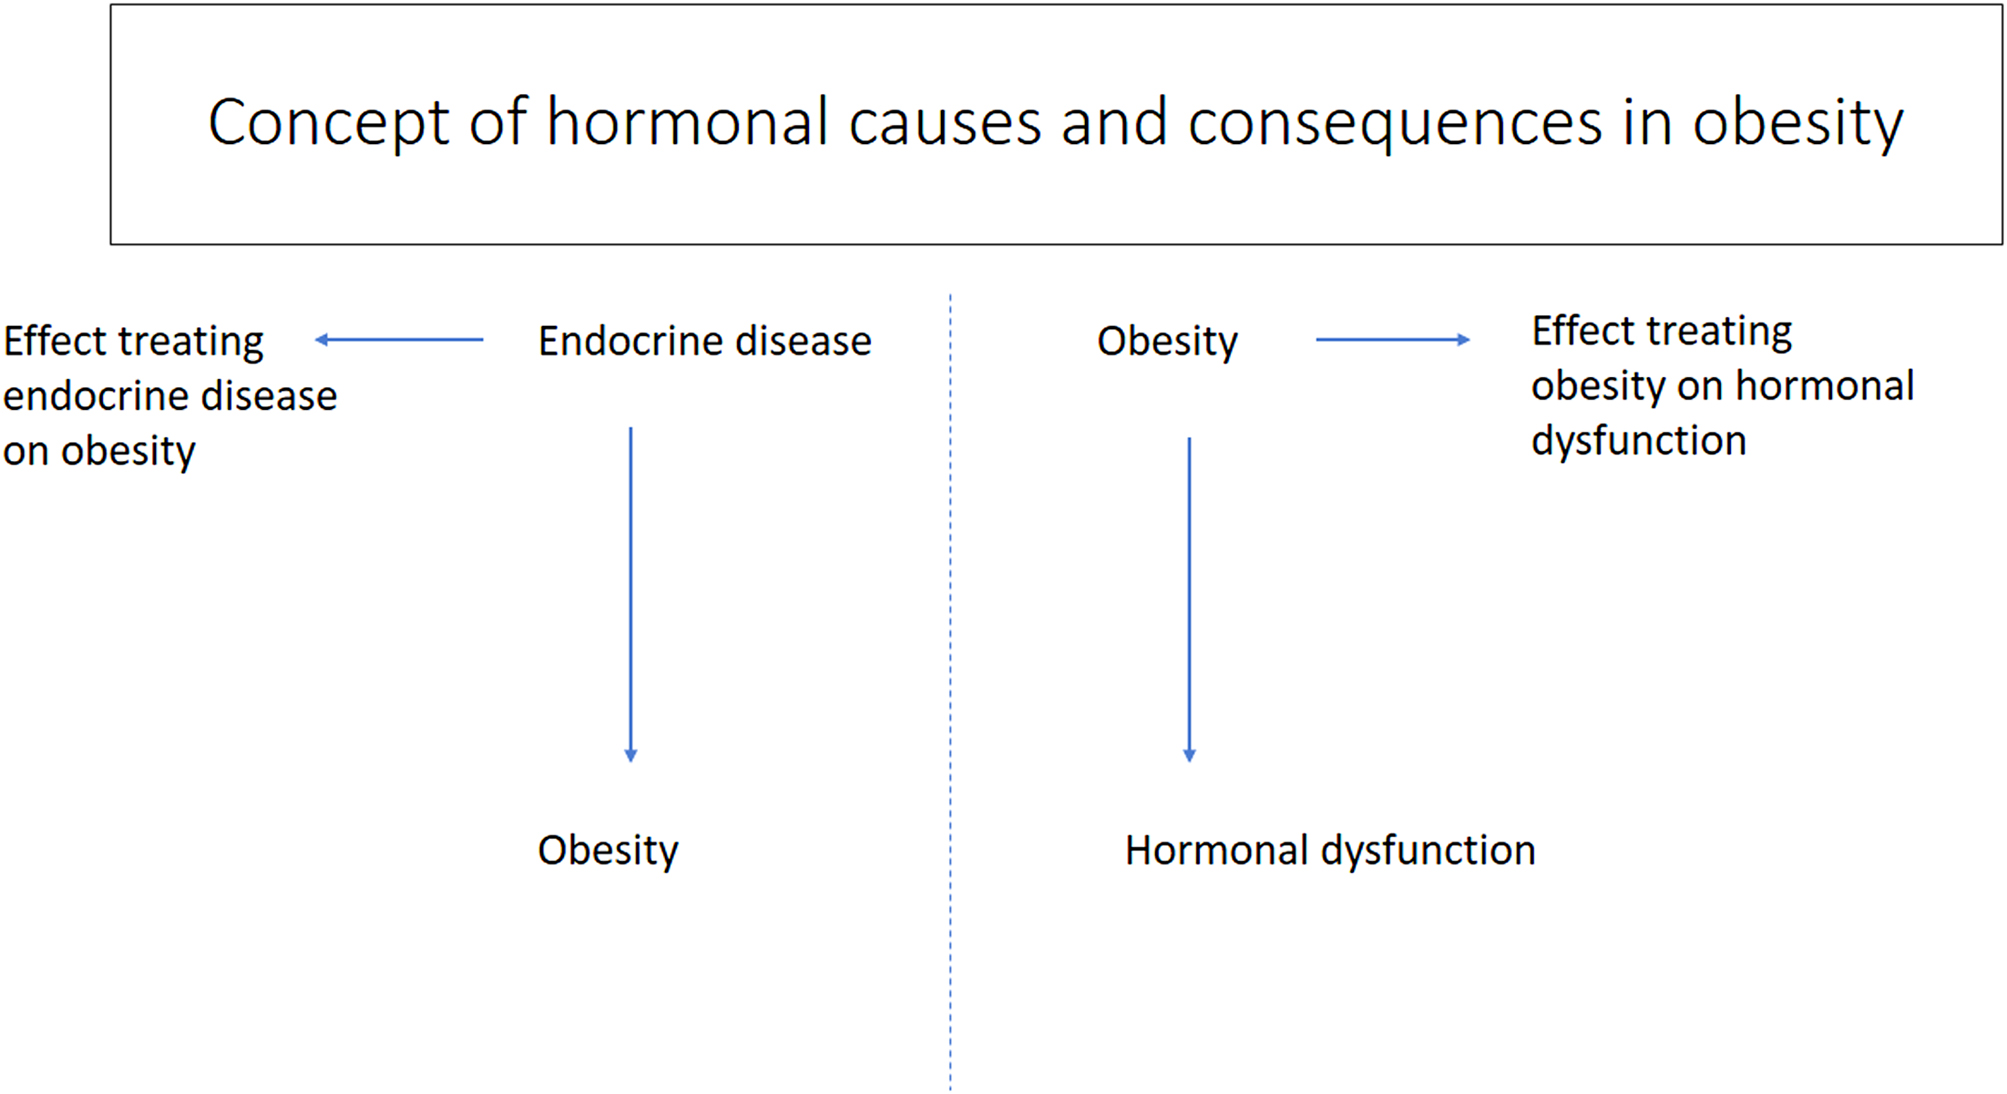 European Society of Endocrinology Clinical Practice Guideline: Endocrine work-up in obesity in: European Journal of Endocrinology Volume 182 Issue 1 (2020)